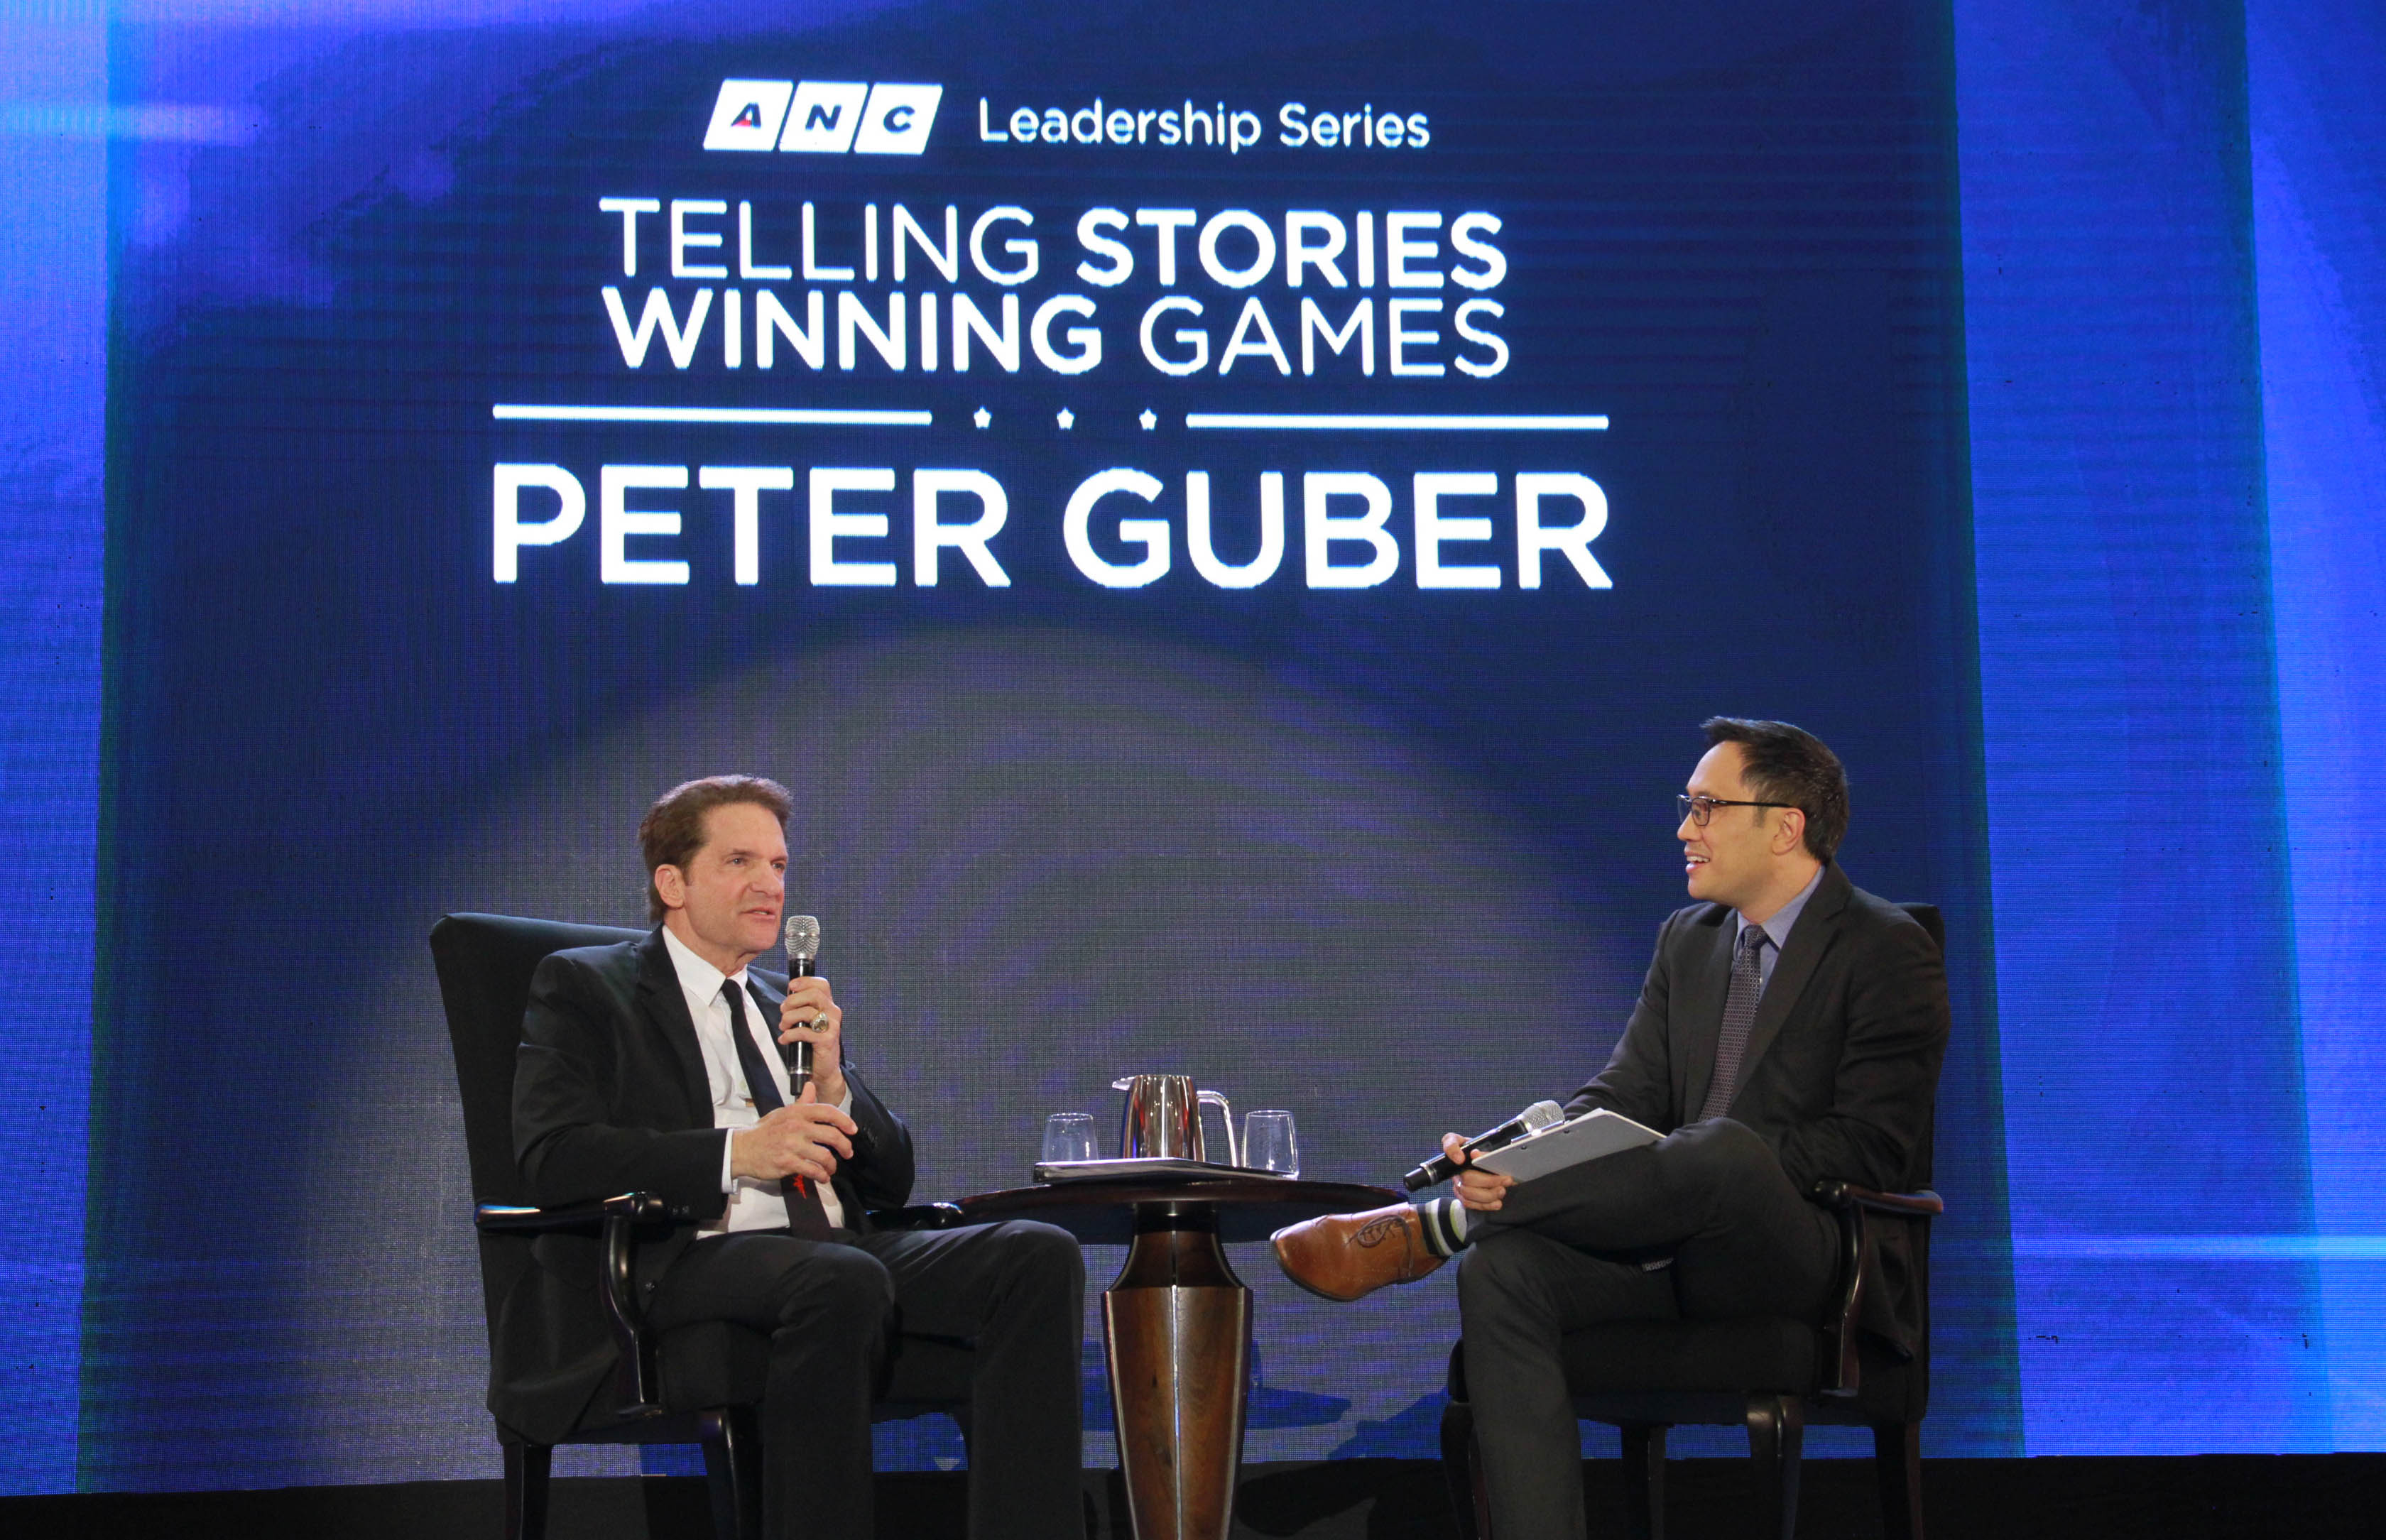 Peter Guber follows Madeleine Albright and Richard Branson as the featured speaker in the ANC Leadership Series